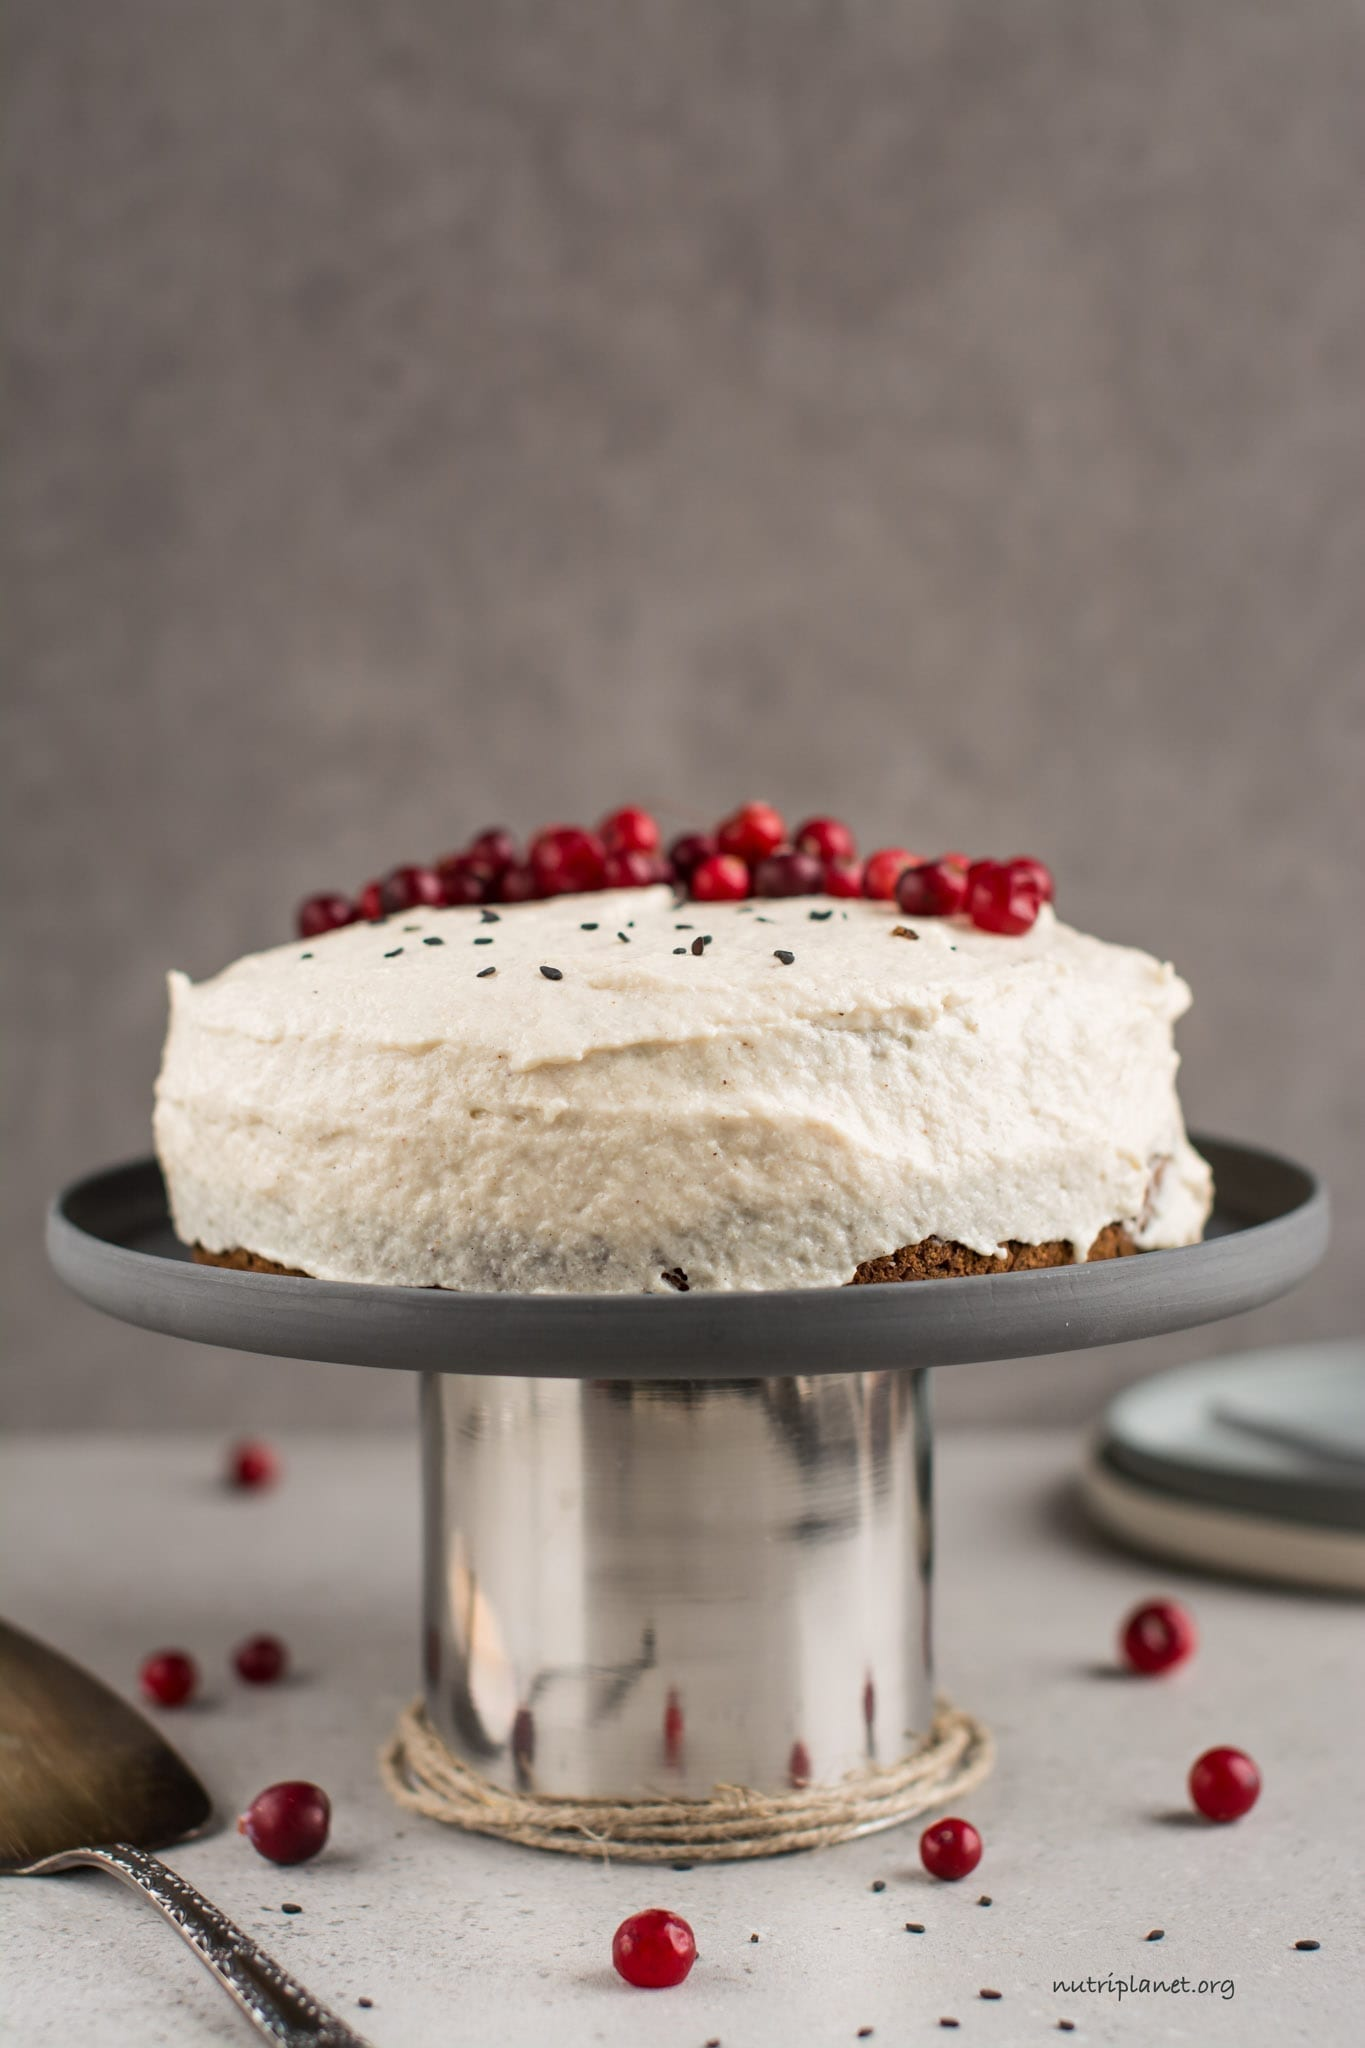 Vegan Carrot Cake with Vegan Cream Cheese Frosting